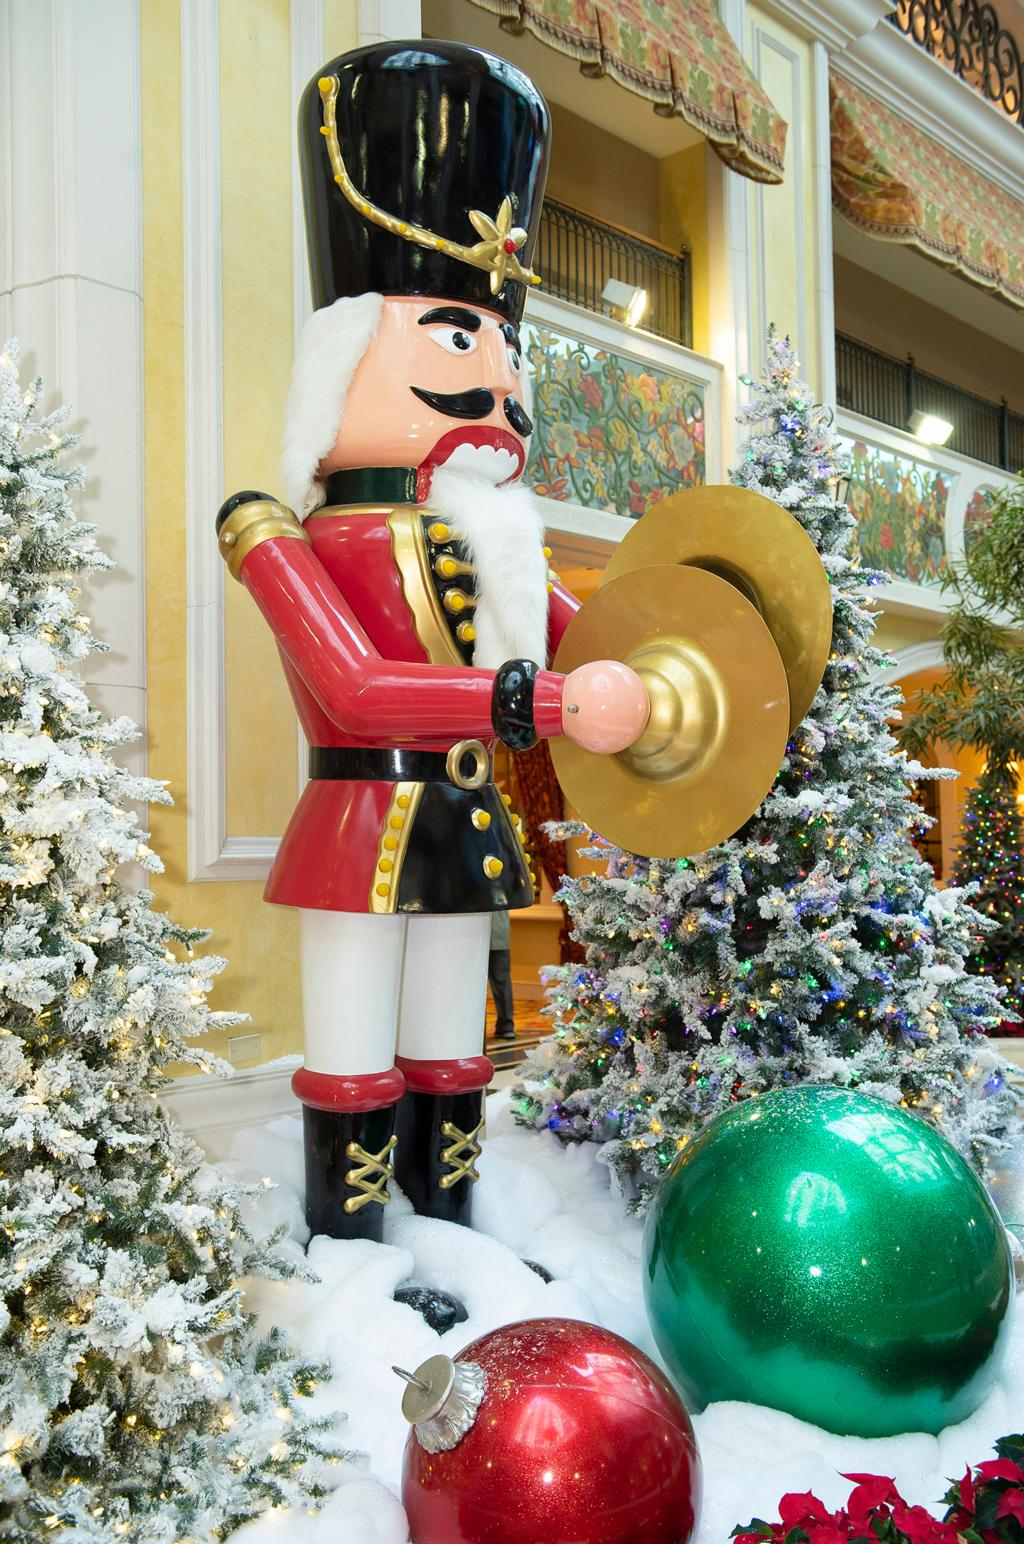 Holidays at Beau Rivage embrace the magic of the season